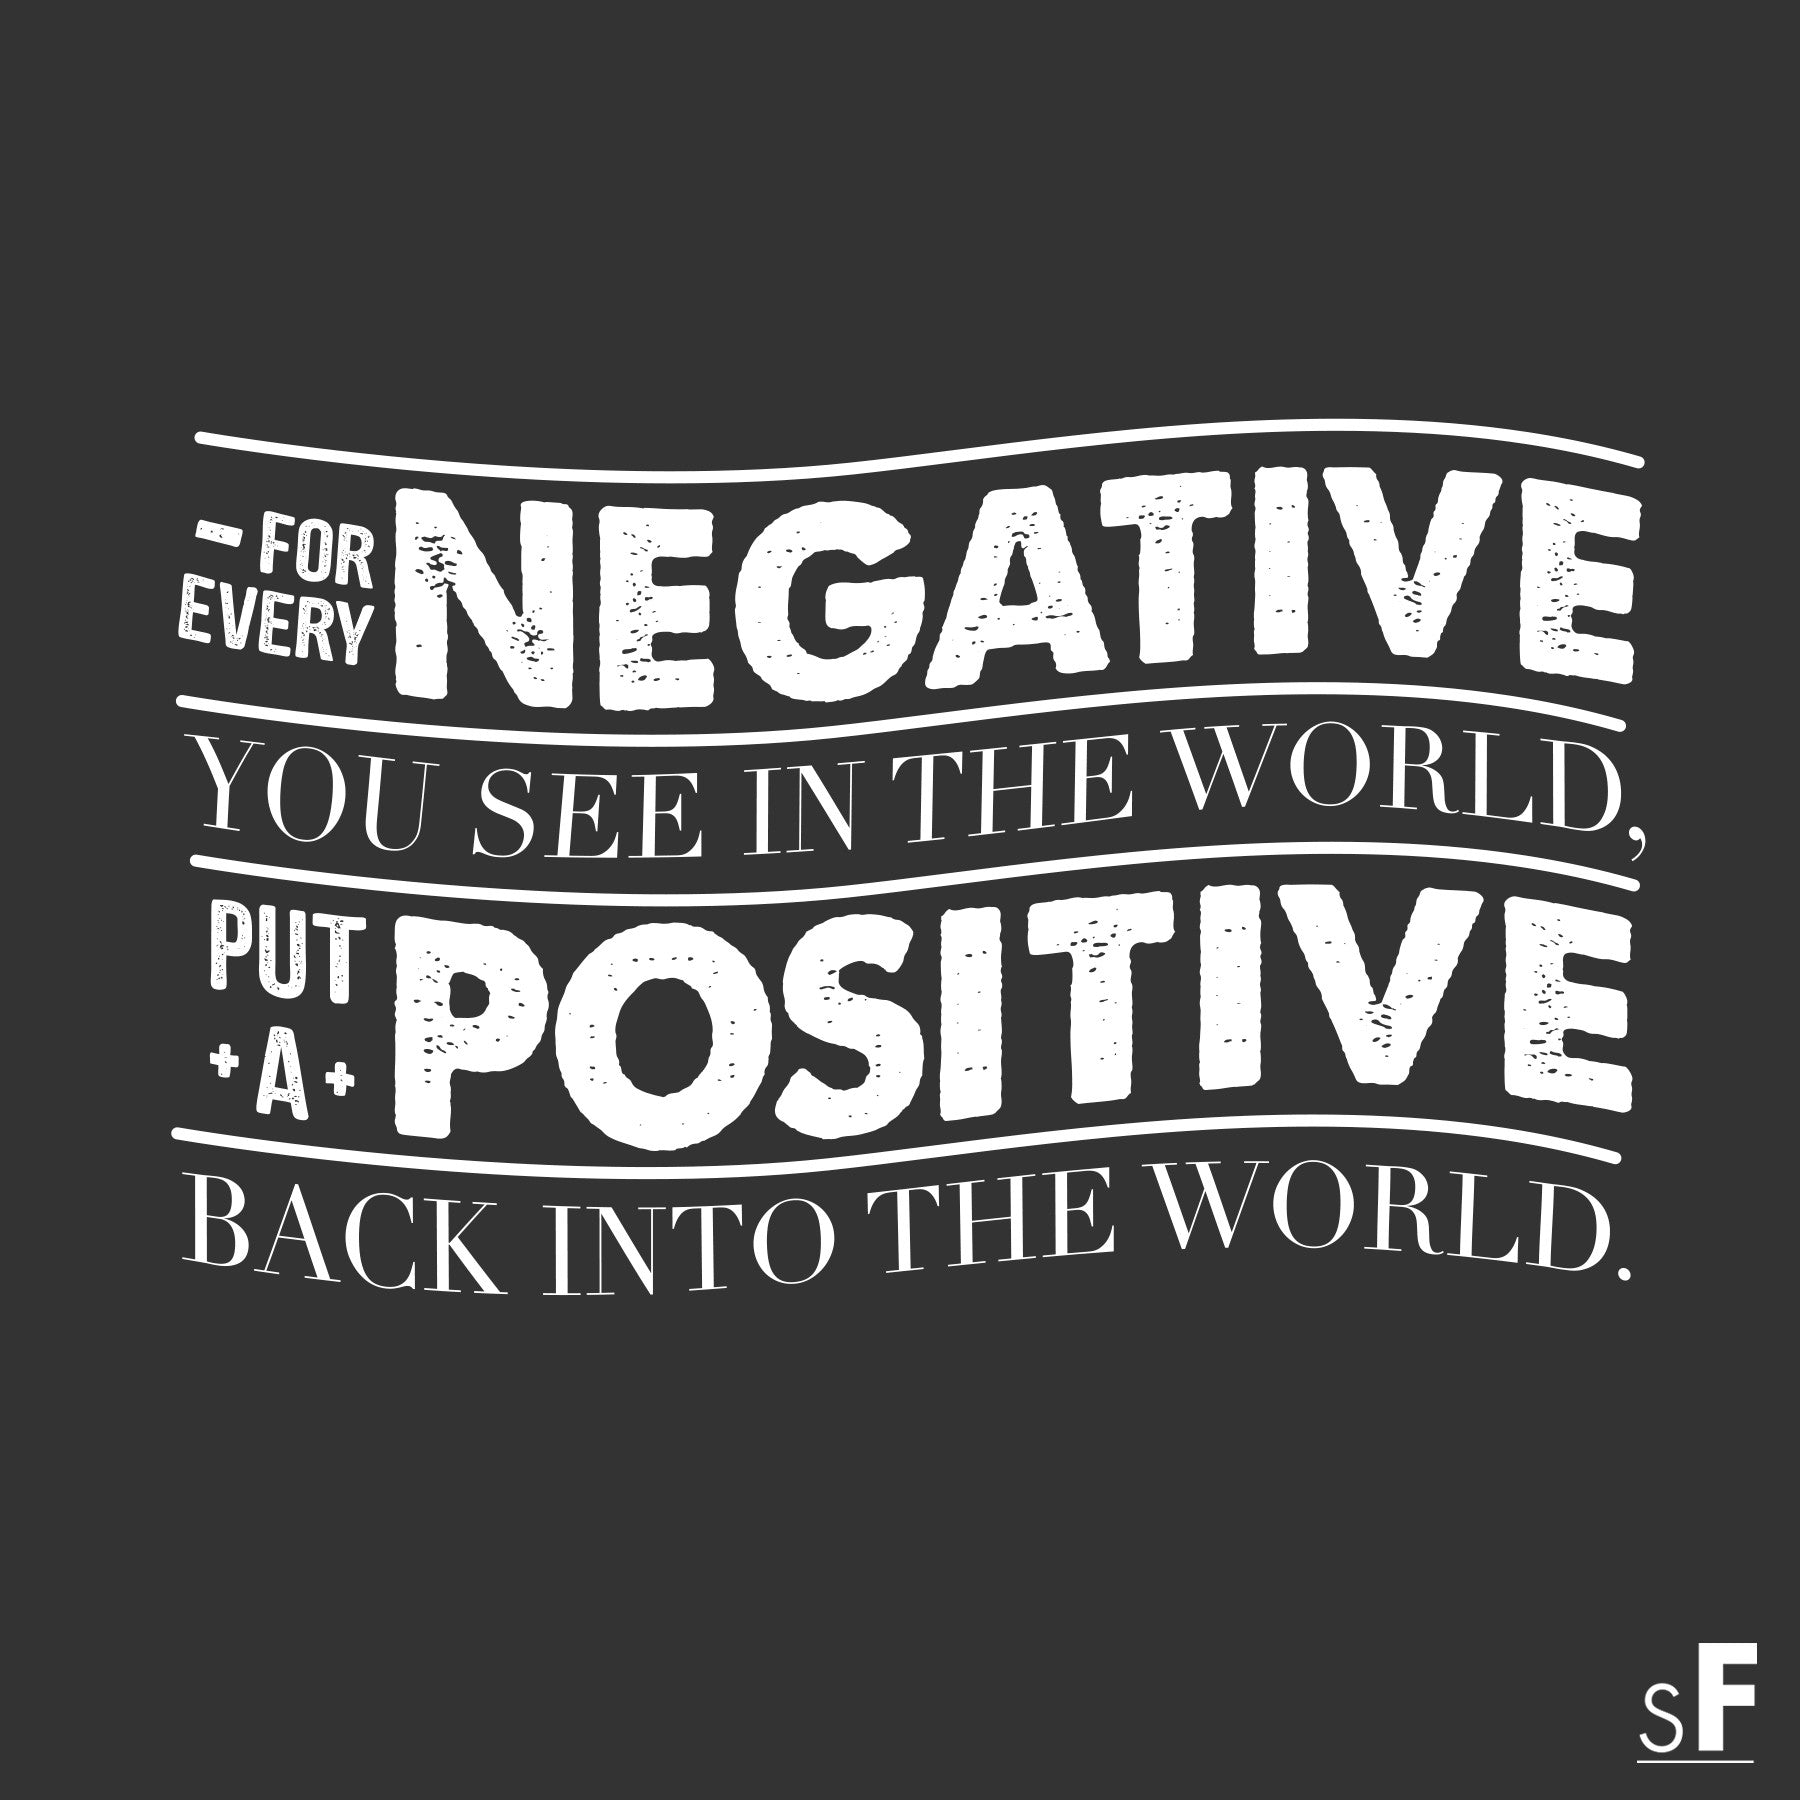 Monday Motivation: Put a Positive Back into the World